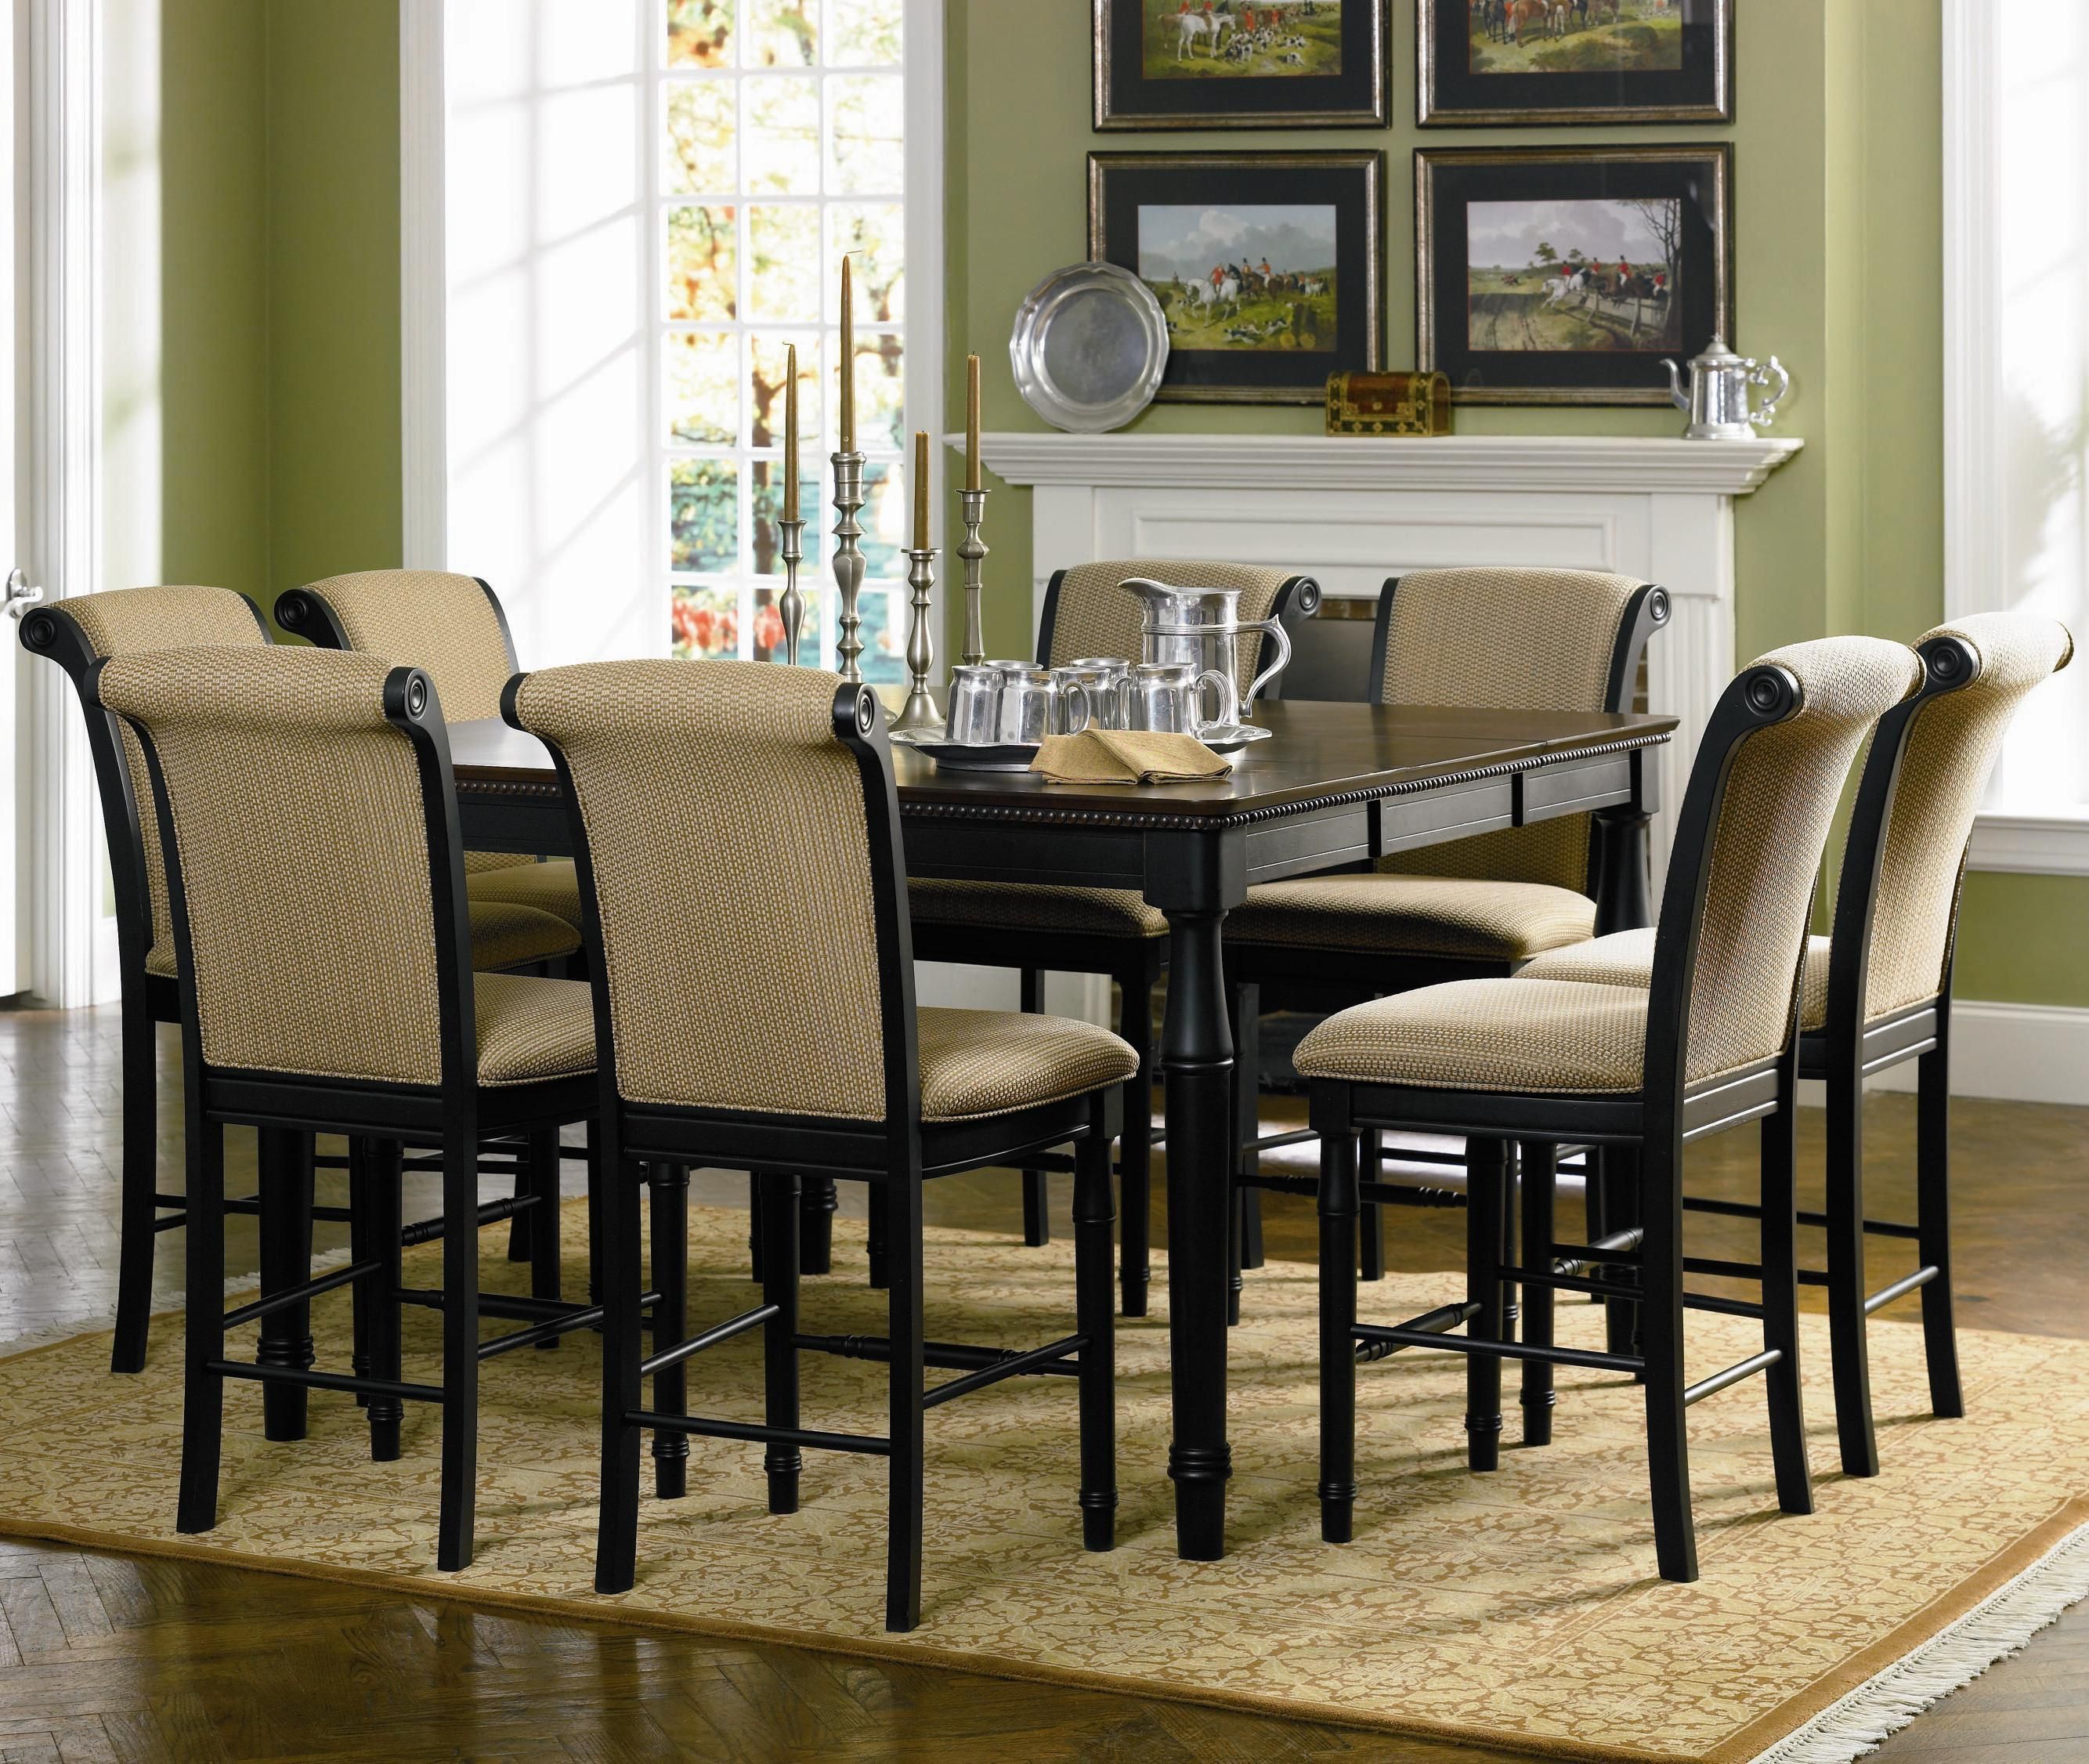 cabrillo 9 piece counter height dining setcoaster | counter